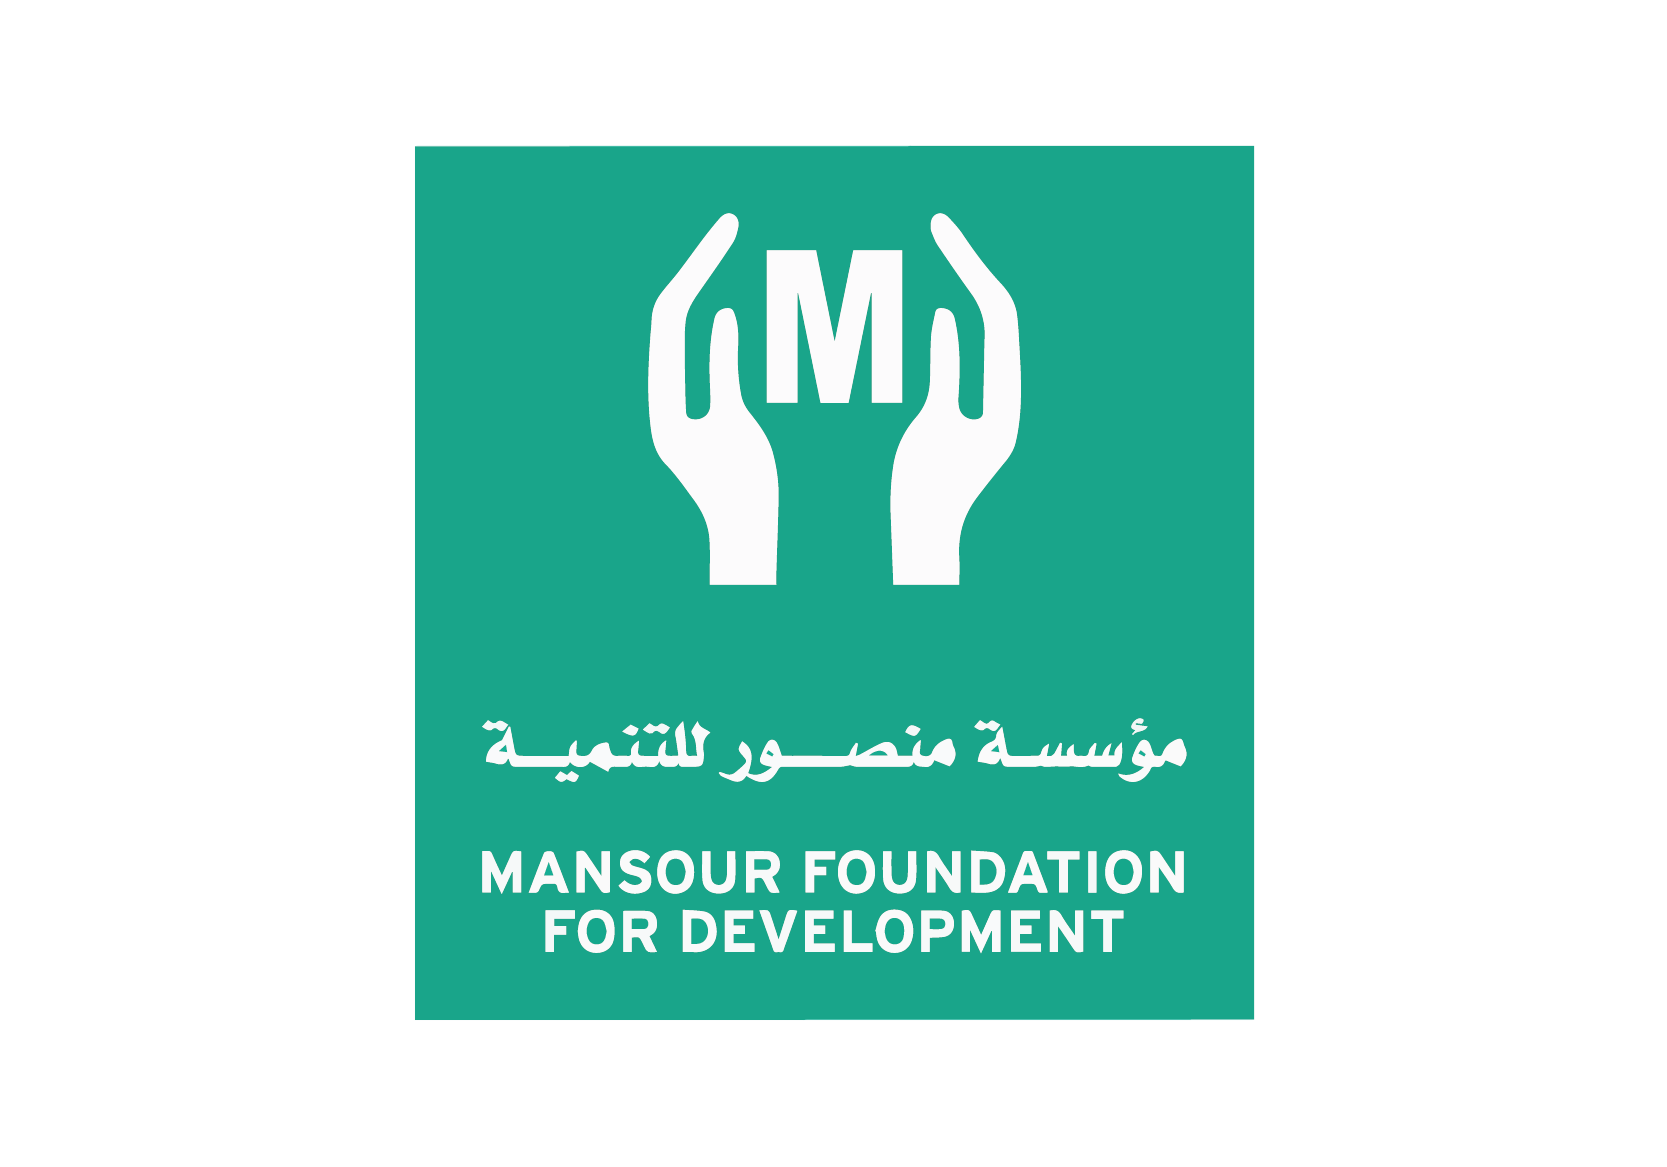 Mansour Foundation